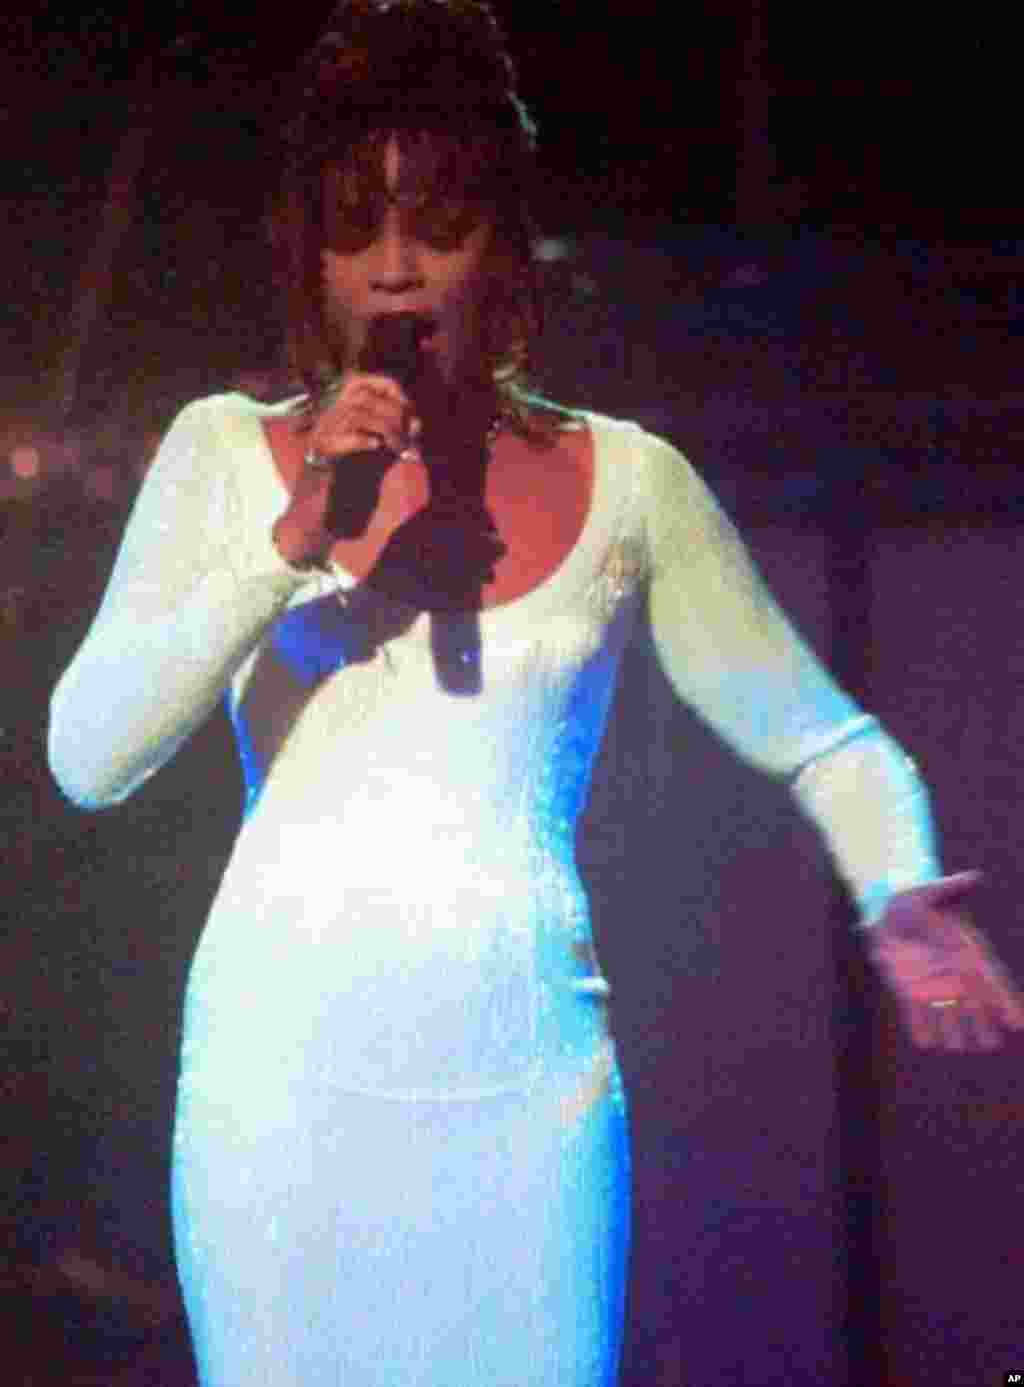 """Whitney Houston sings """"I Will Always Love You"""" during the opening of the 36th Annual Grammy Awards at New York's Radio City Music Hall on March 1, 1994. Houston later won Best Pop Female Vocal Performance for the song. (AP Photo/Ron Frehm)"""